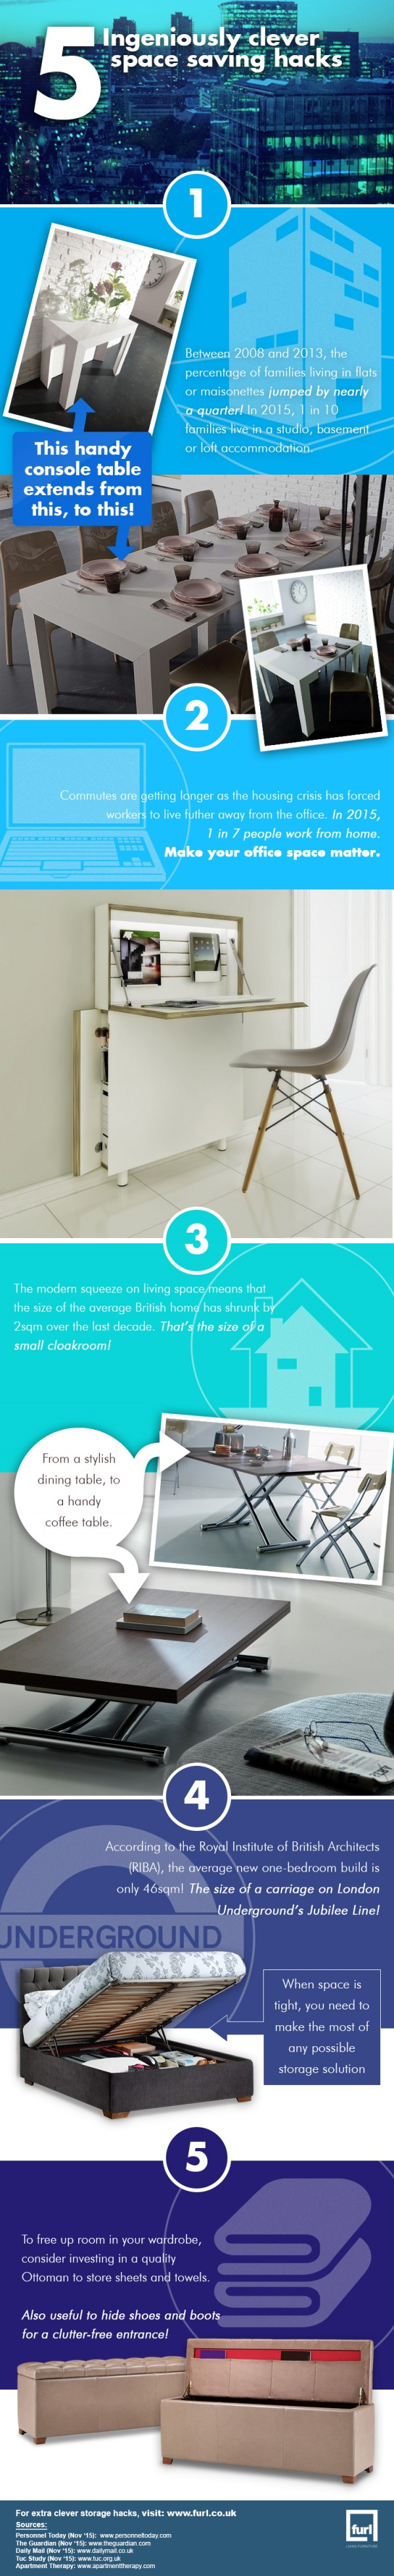 Amazing Hacks And Tips For Space Saving